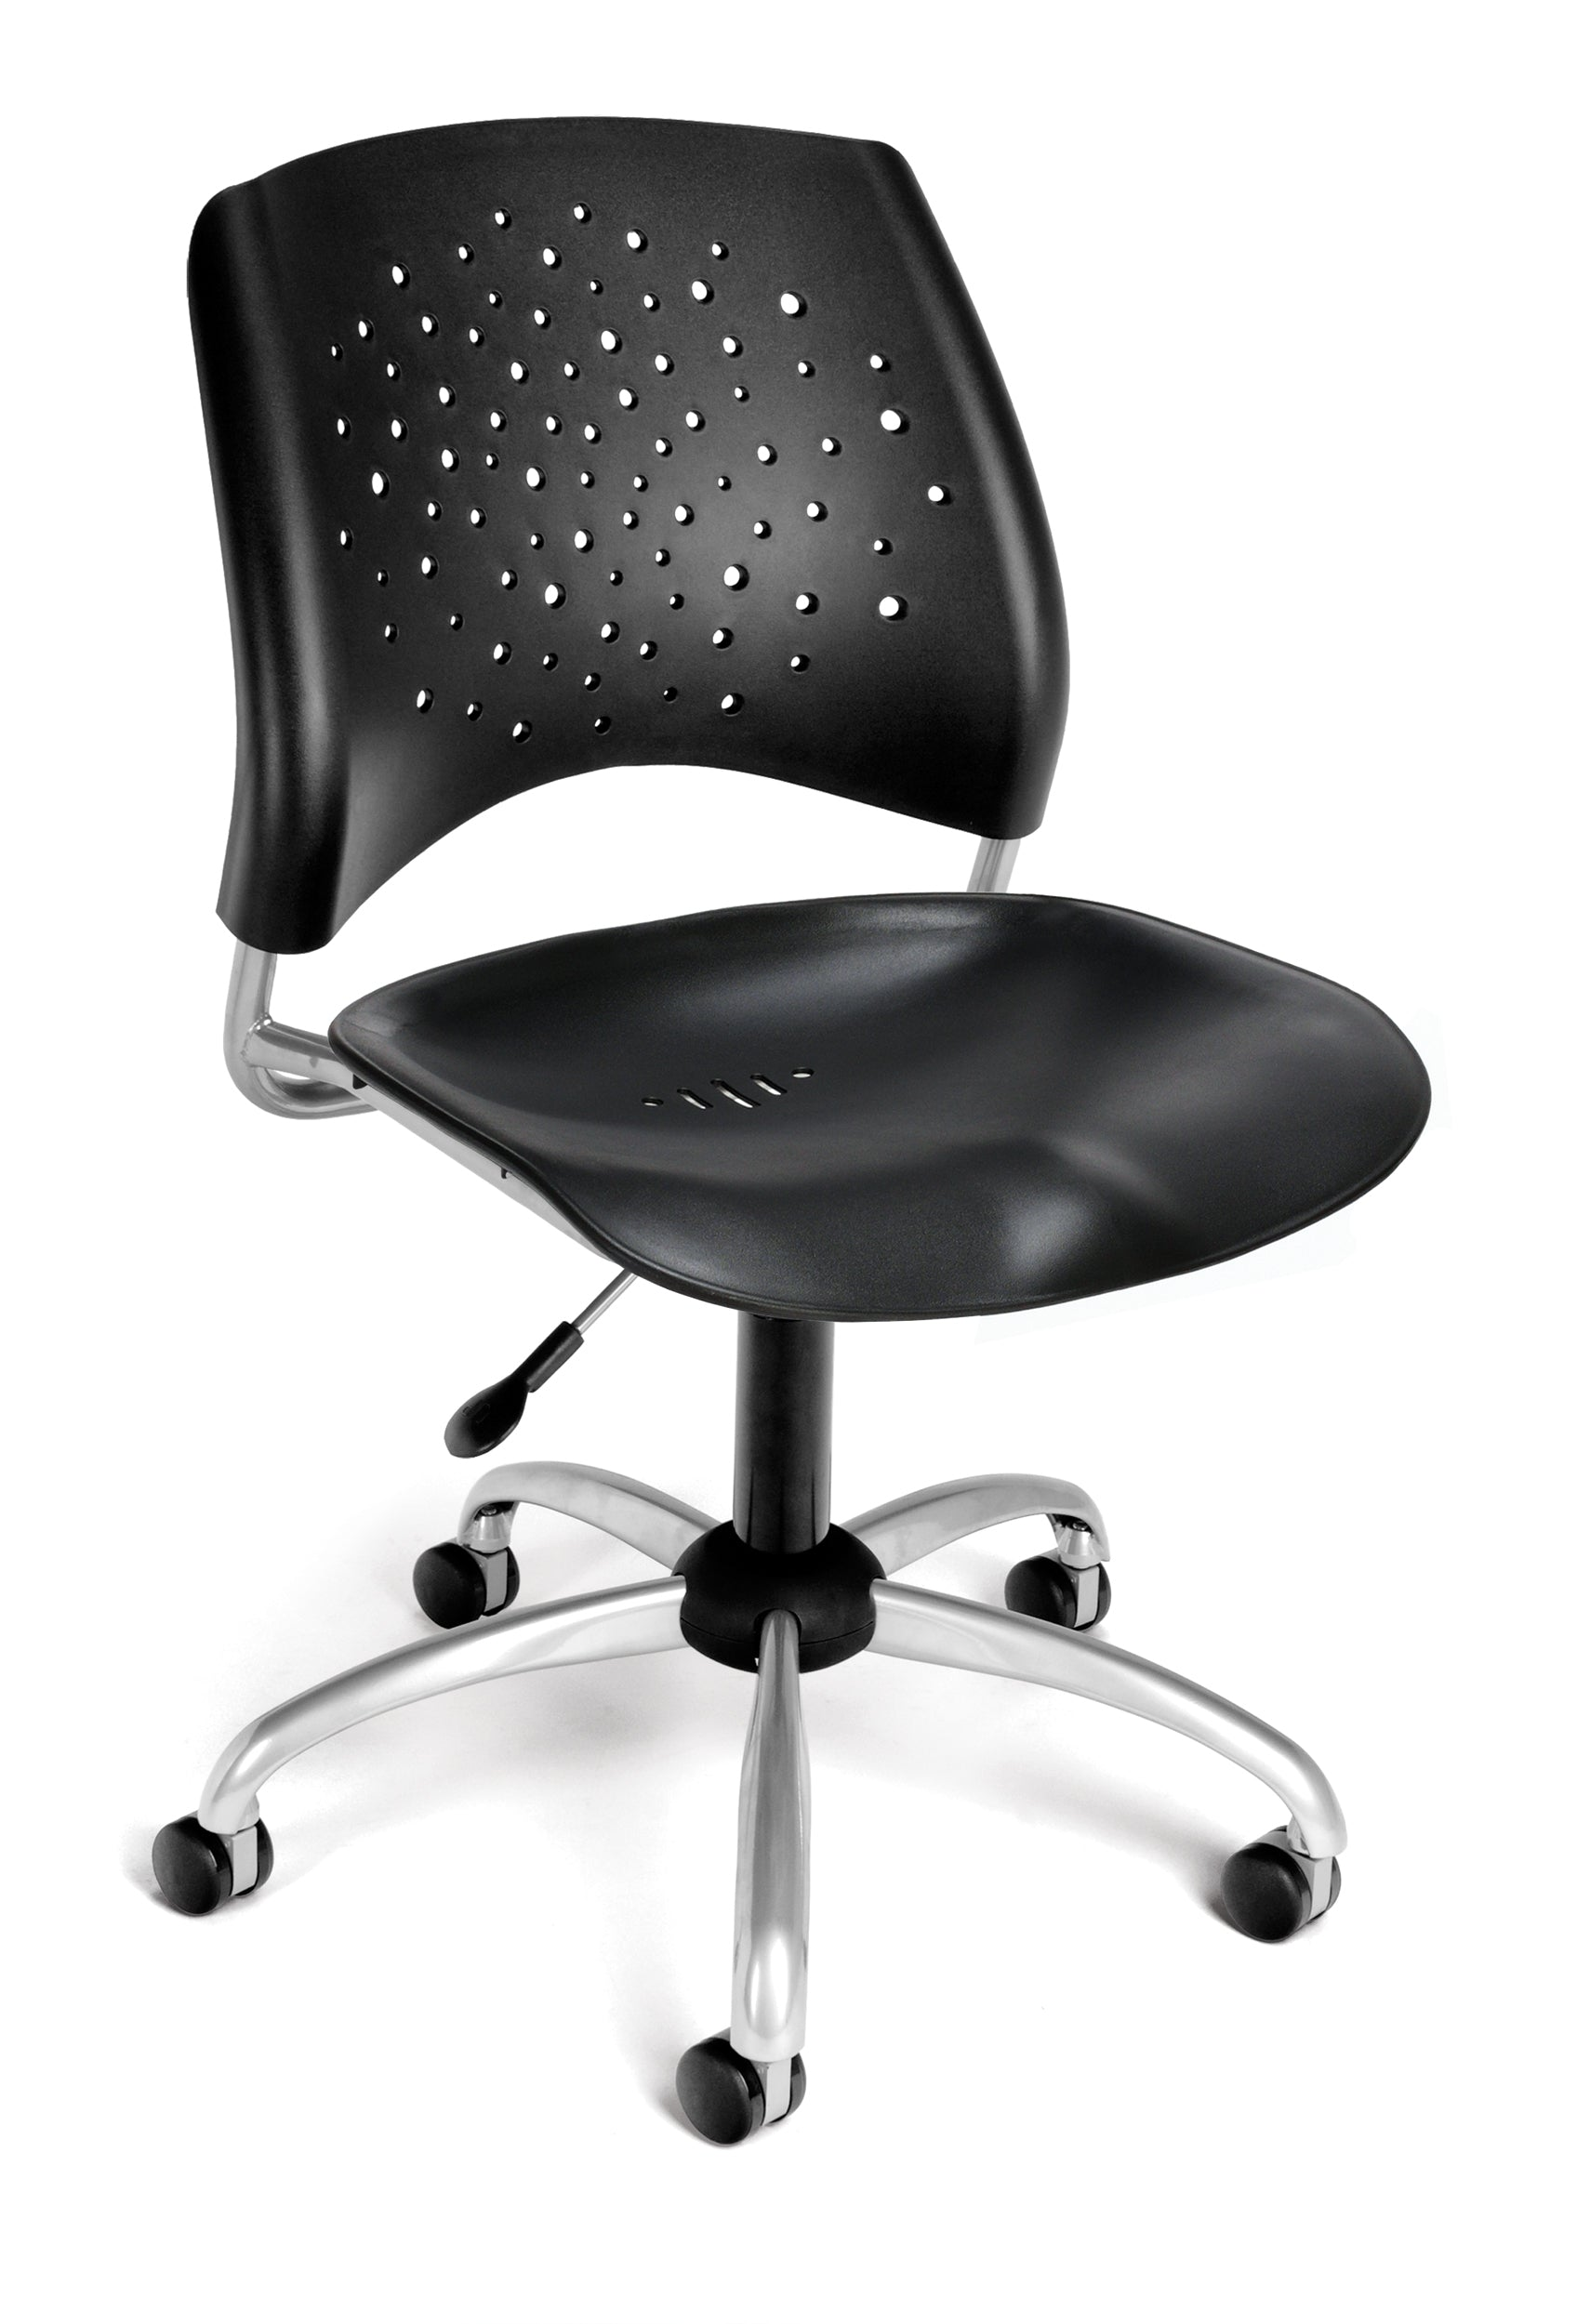 Ofminc Model 326-P Stars Series Armless Plastic Swivel Chair